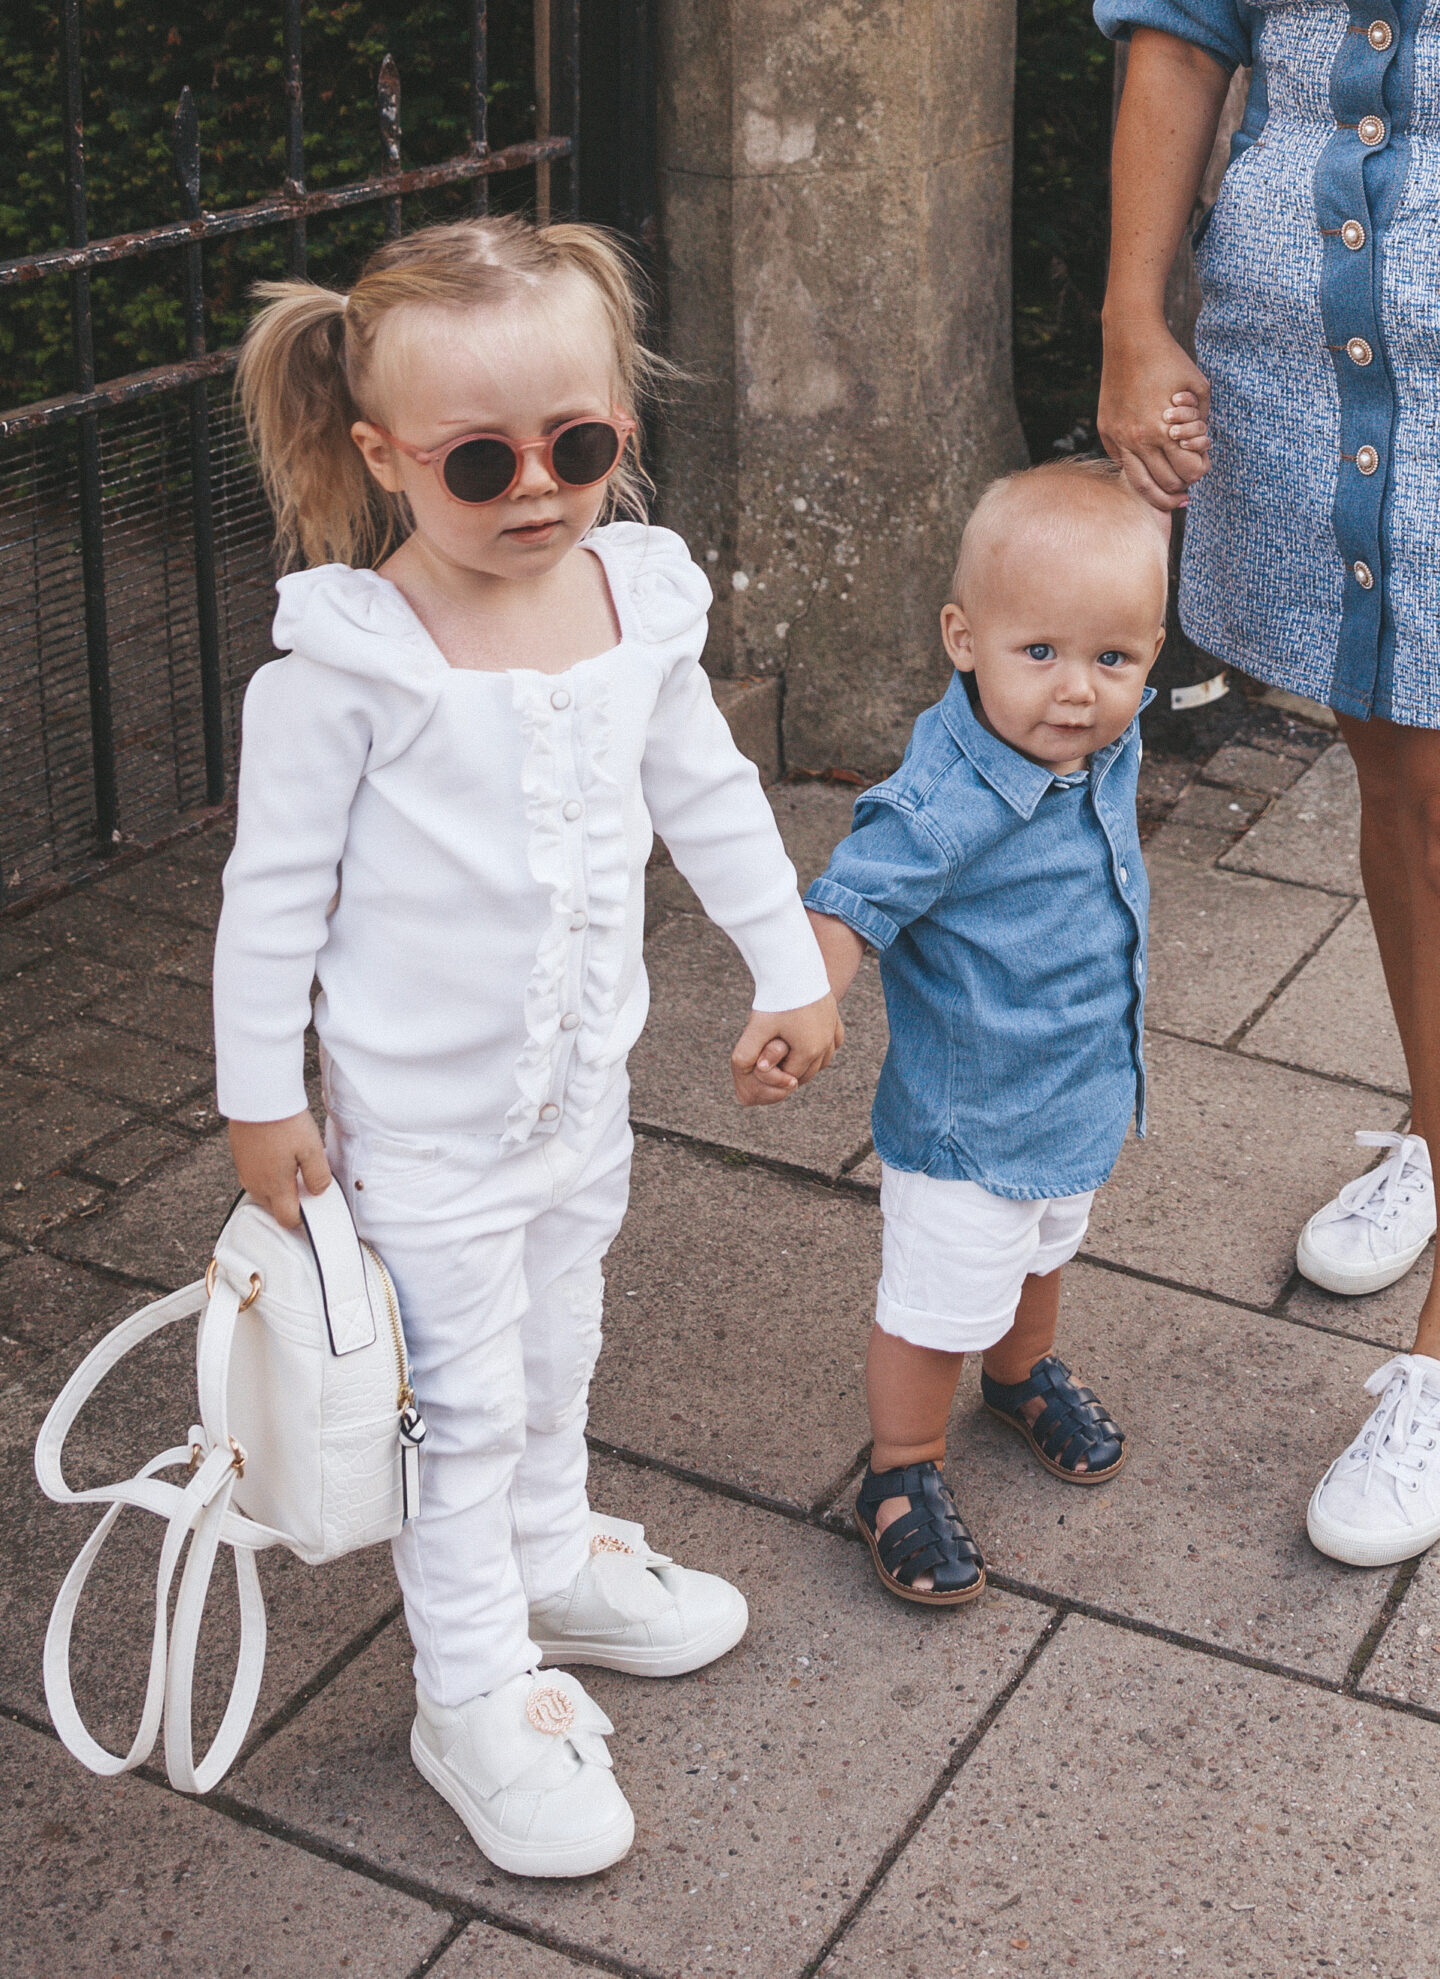 Matching-Outfits-Siblings